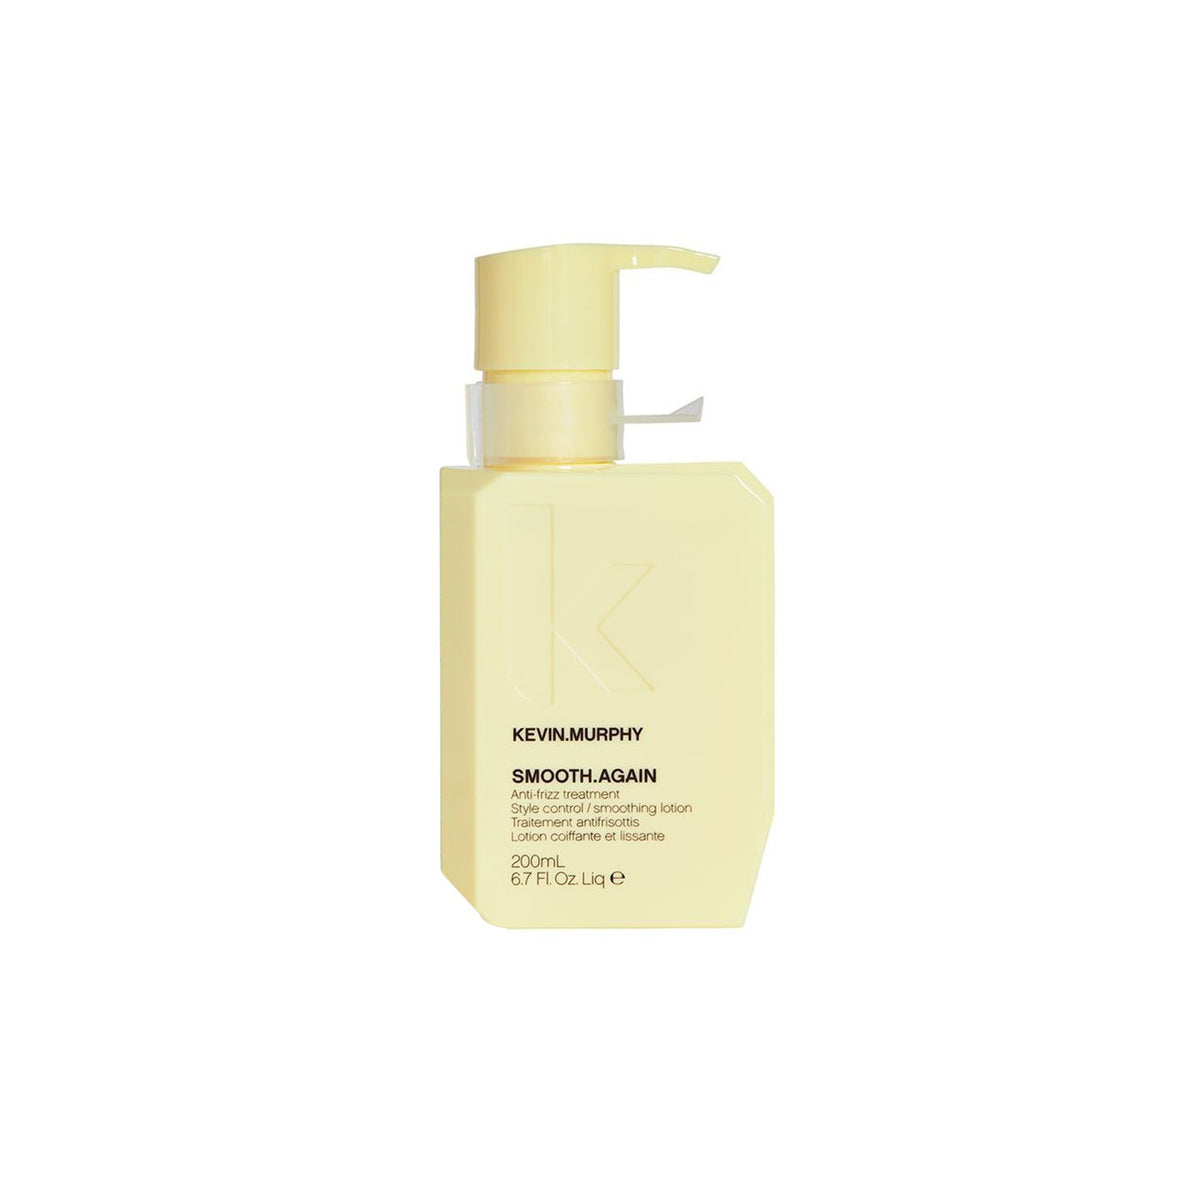 Kevin Murphy SMOOTH.AGAIN 200ml